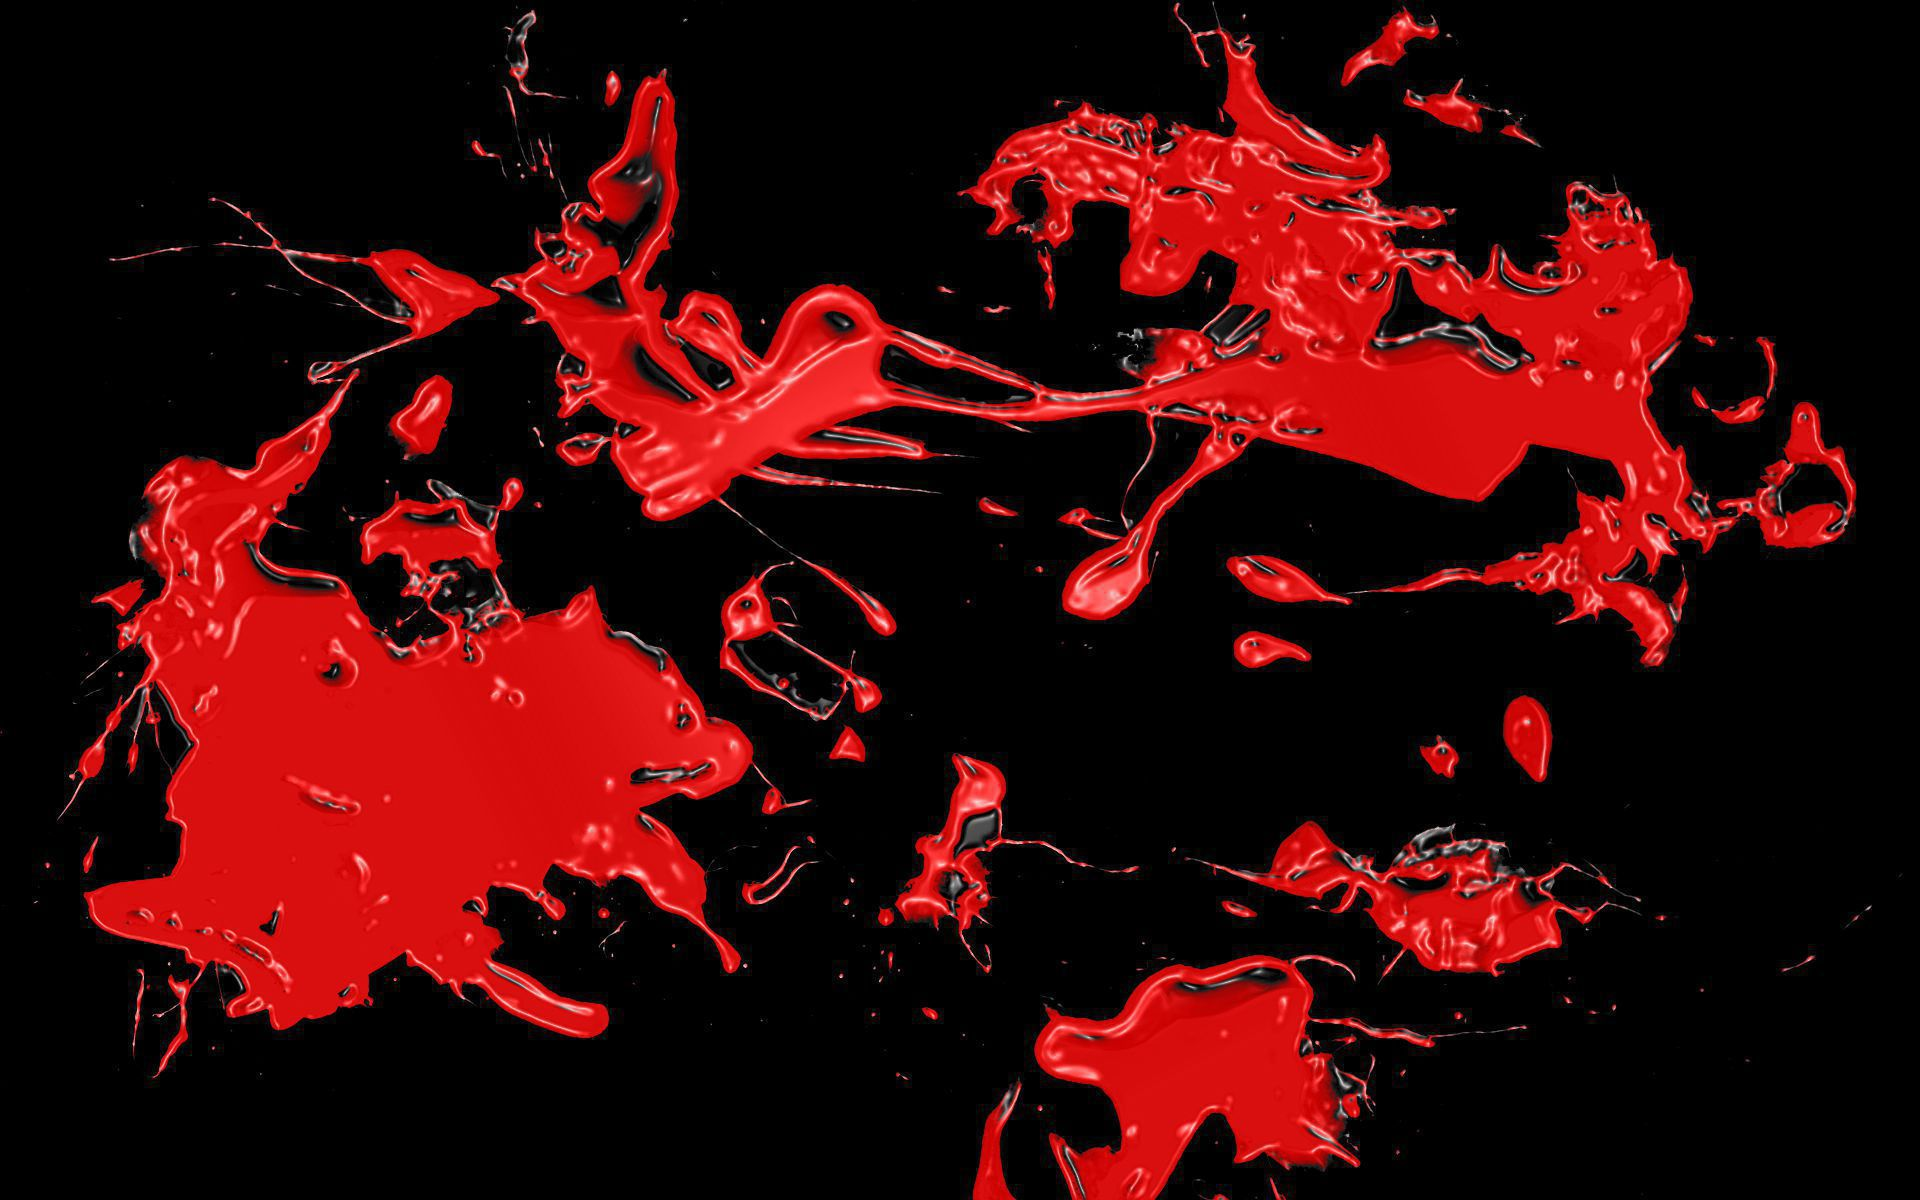 Blood Splatter Wallpaper Pack